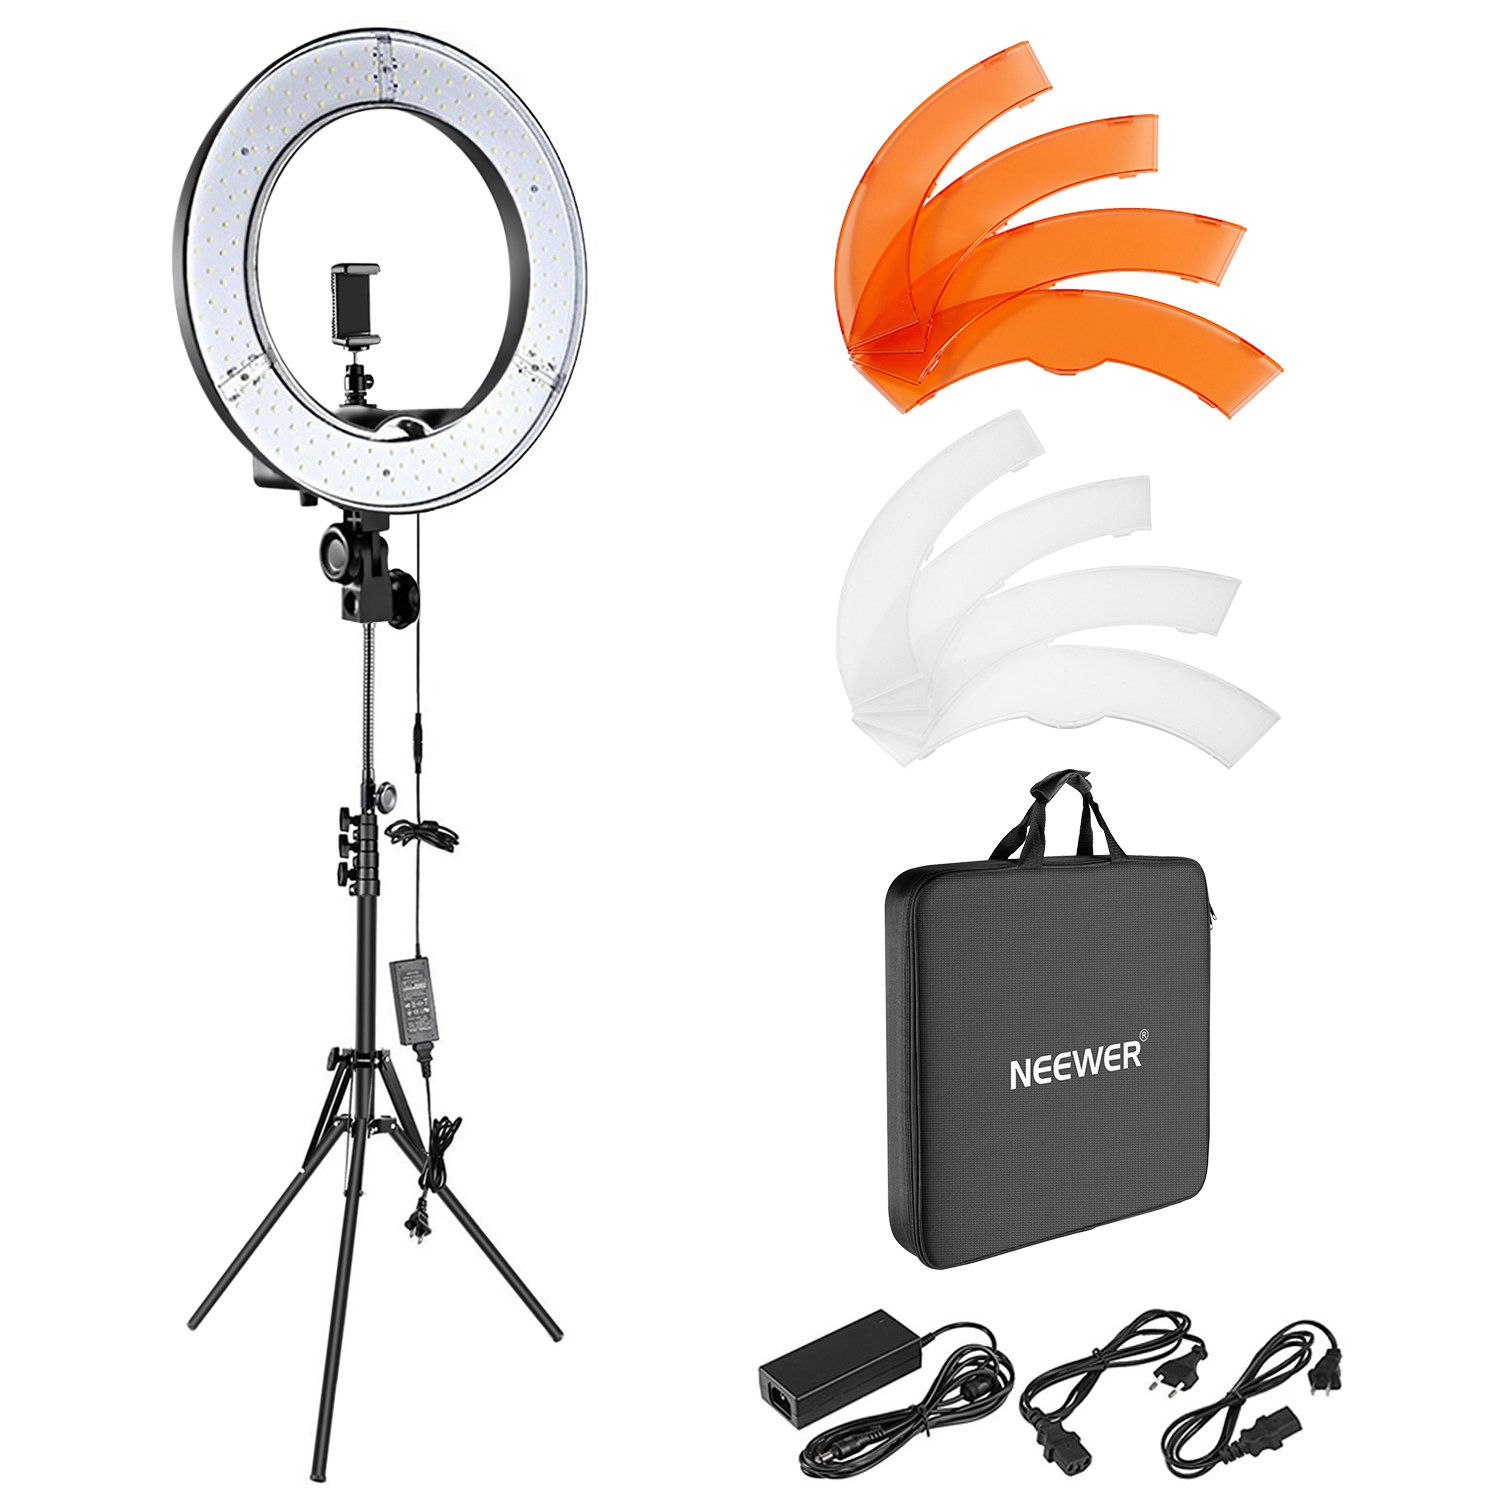 Neewer Camera Photo Video Lighting Kit: 18 inches/48 Centimeters Outer 55W 5500K Dimmable LED Ring Light, Light Stand, Bluetooth Receiver for Smartphone, YouTube, Vine Self-Portrait Video Shooting by Neewer